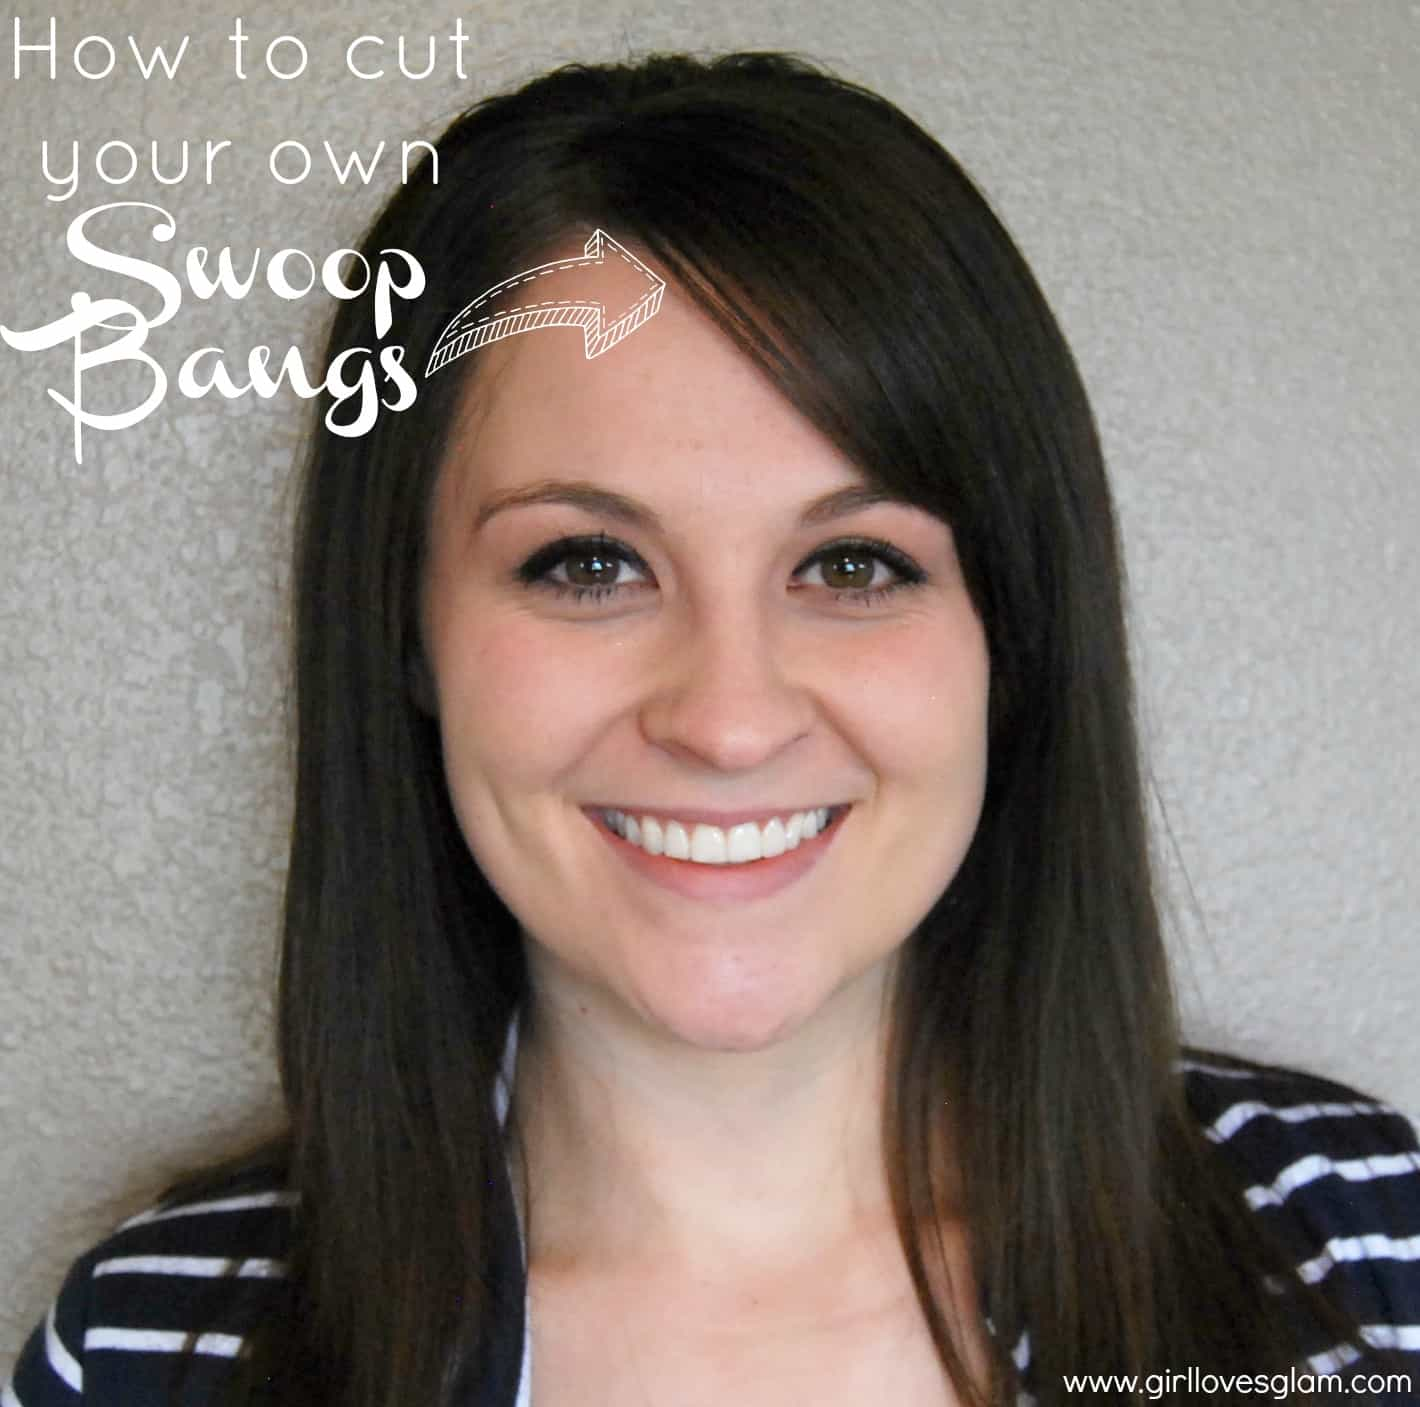 swoop bangs at home on www.girllovesglam.com #diy #hair #cut #tutorial